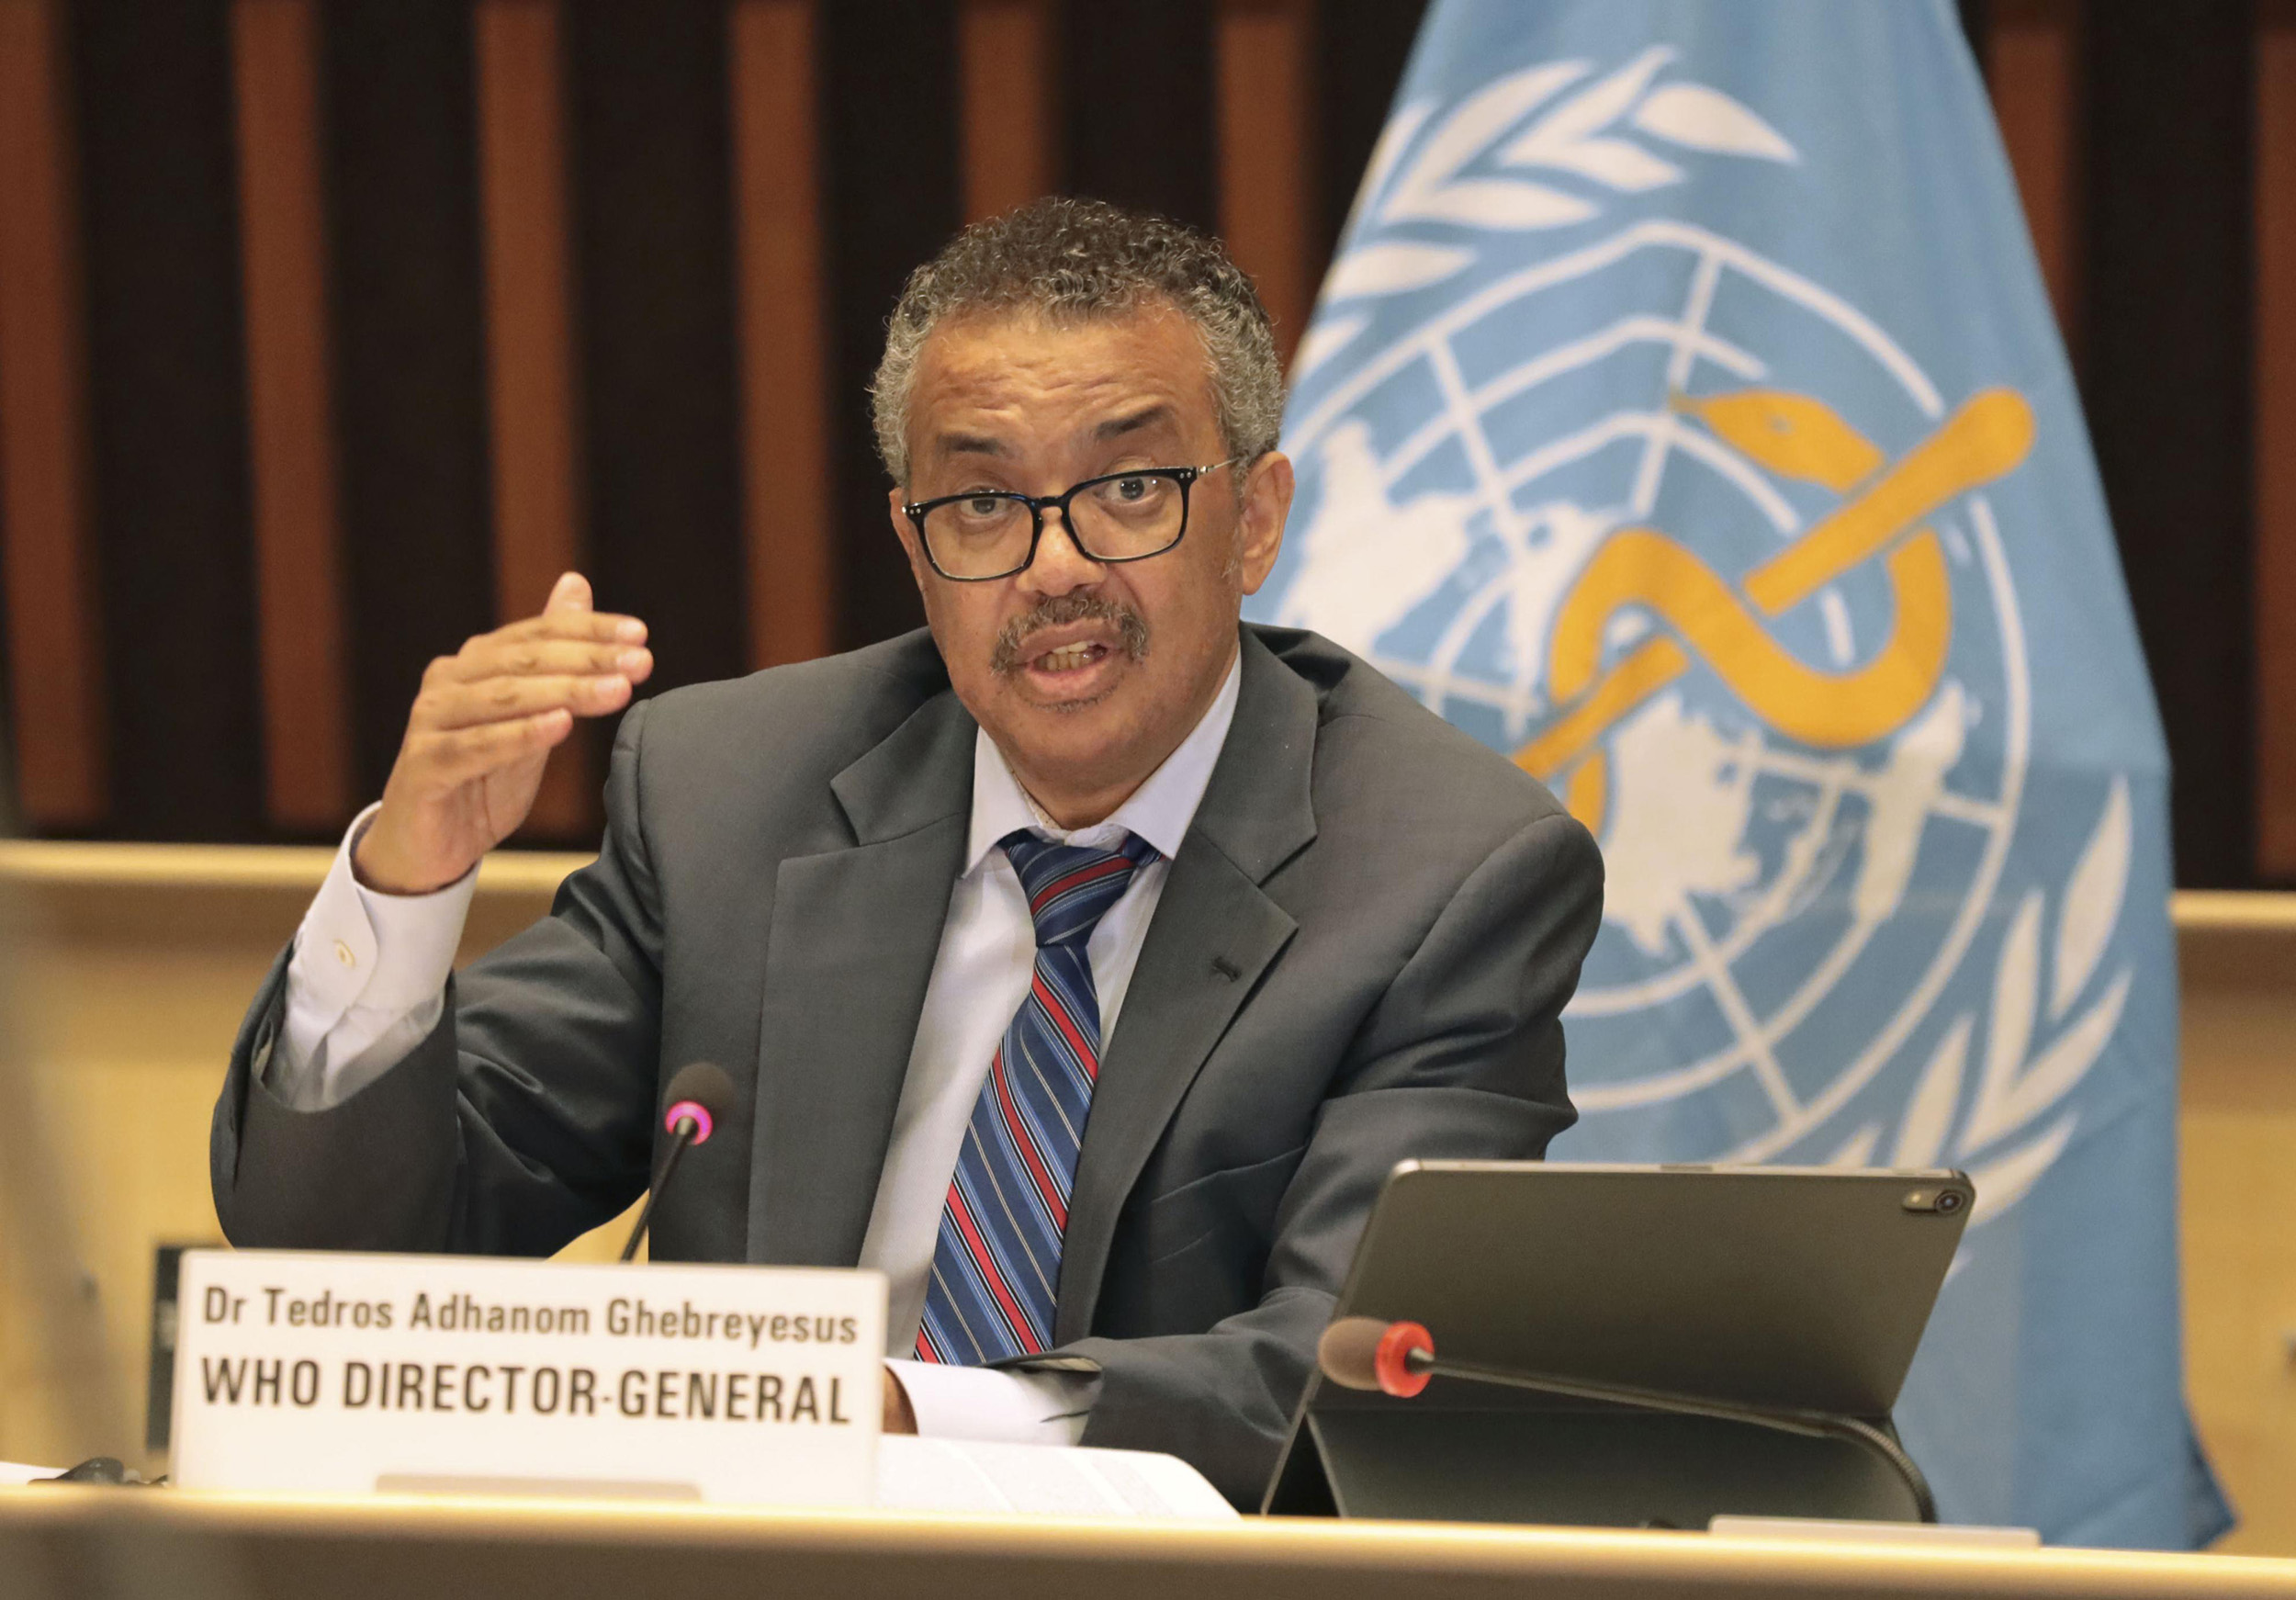 World Health Organization Director General Tedros Adhanom Ghebreyesus speaks at a press conference at its head office in Geneva on July 3.